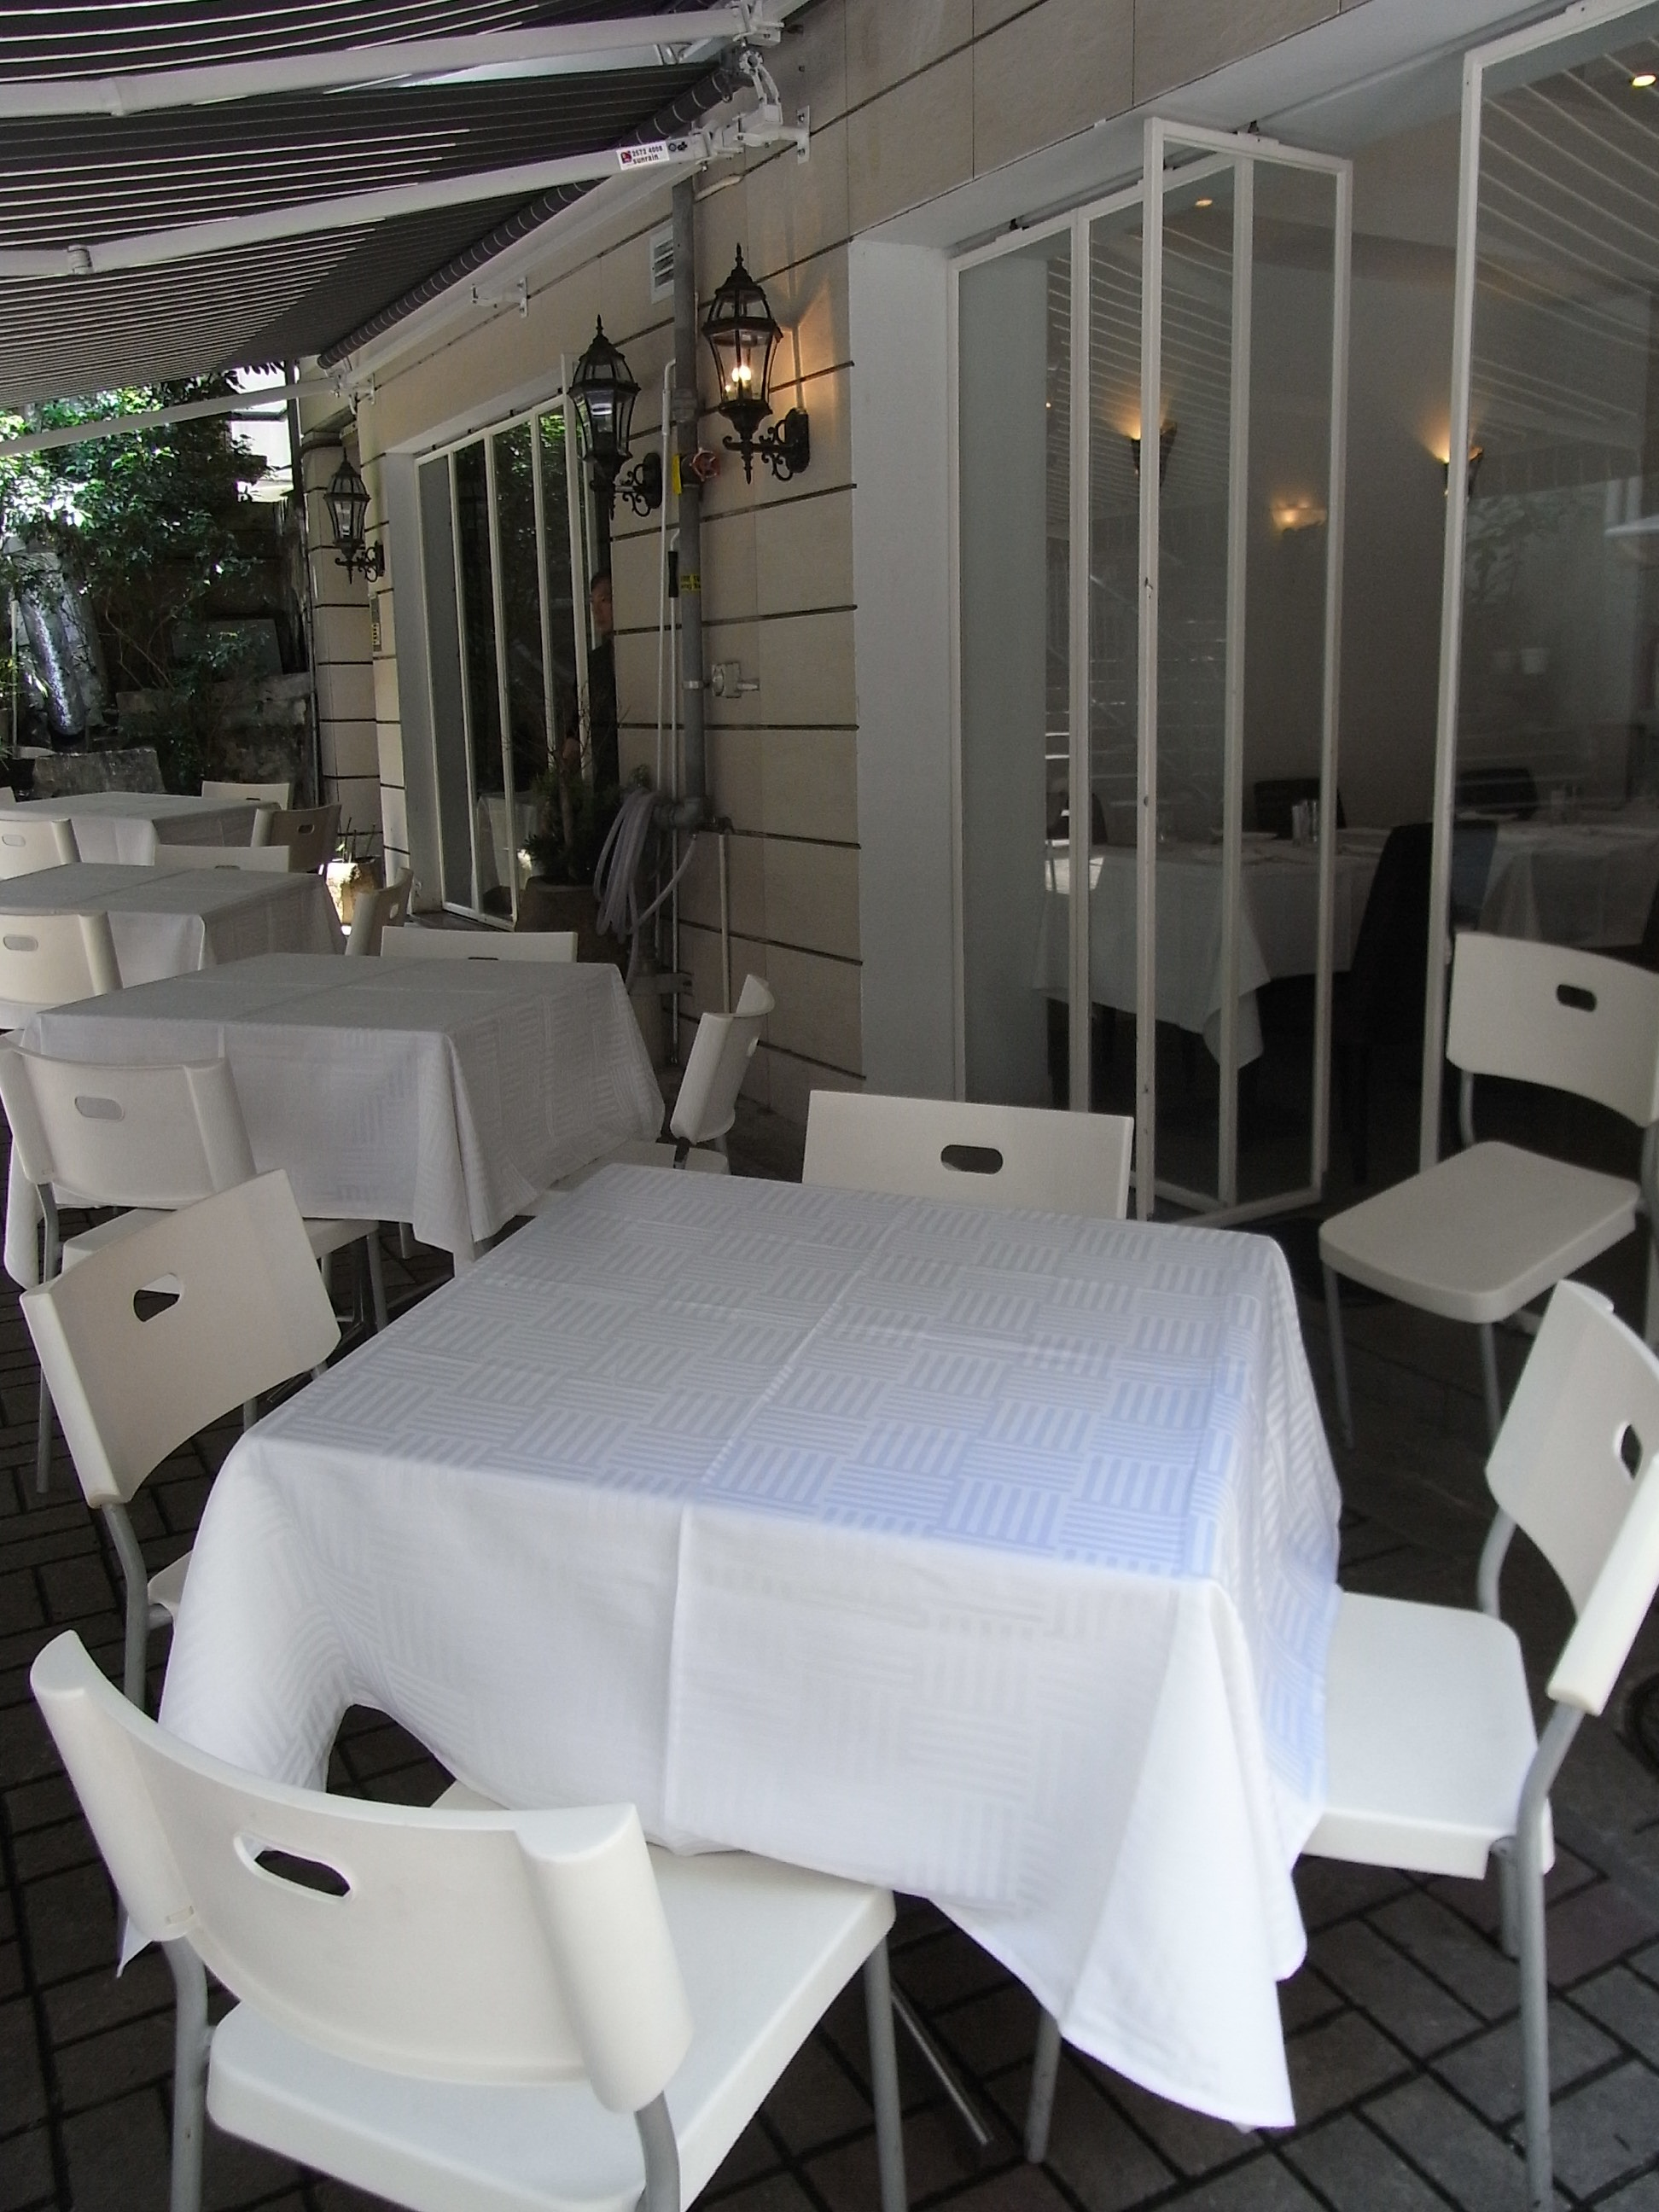 File:HK Sheung Wan 40-42 Gough Stree restaurant furniture white cotton table cover